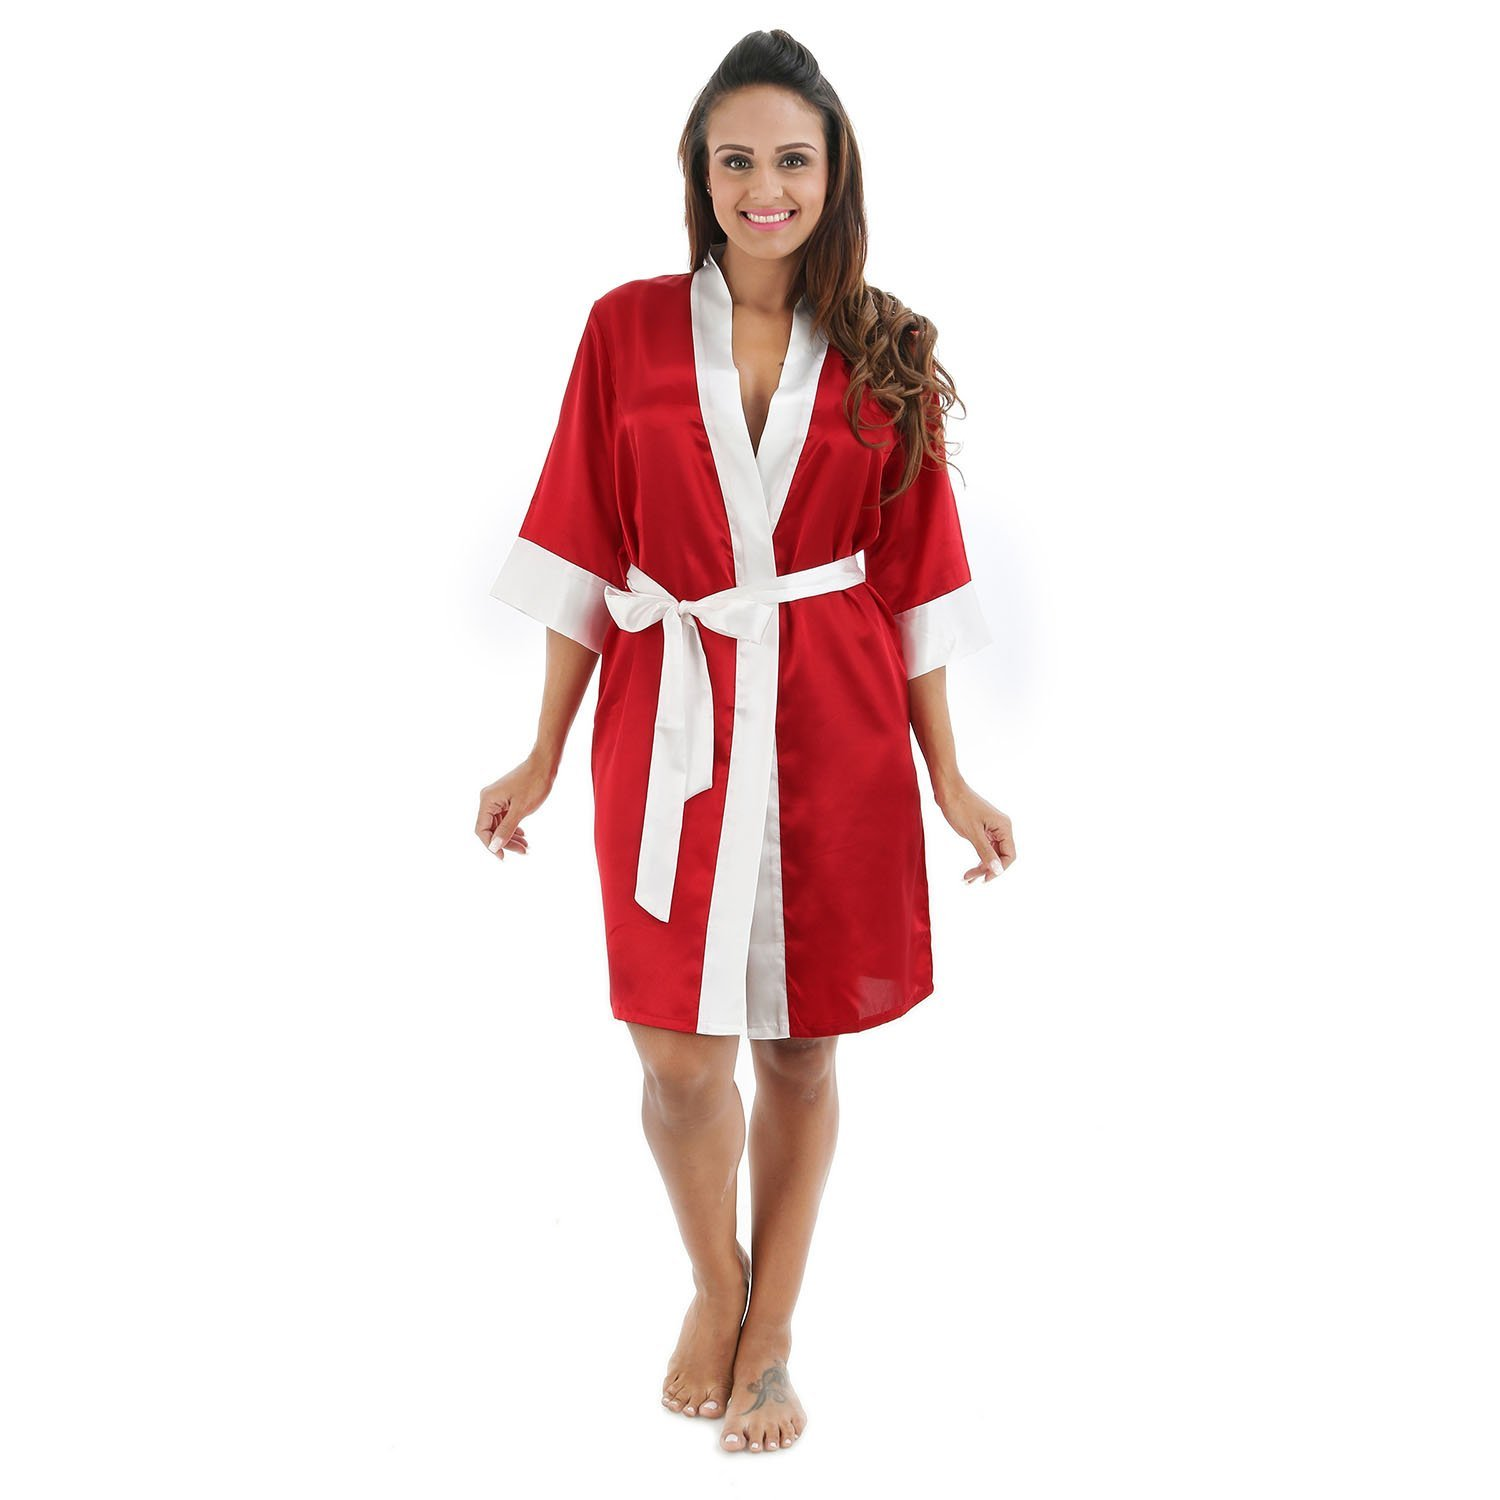 7a1c60c805 Get Quotations · Bathrobe Ladies Silk Satin Dressing Gown Robe Bathrobe Tie  Waist Long Kimono Relaxed And Confortable Home